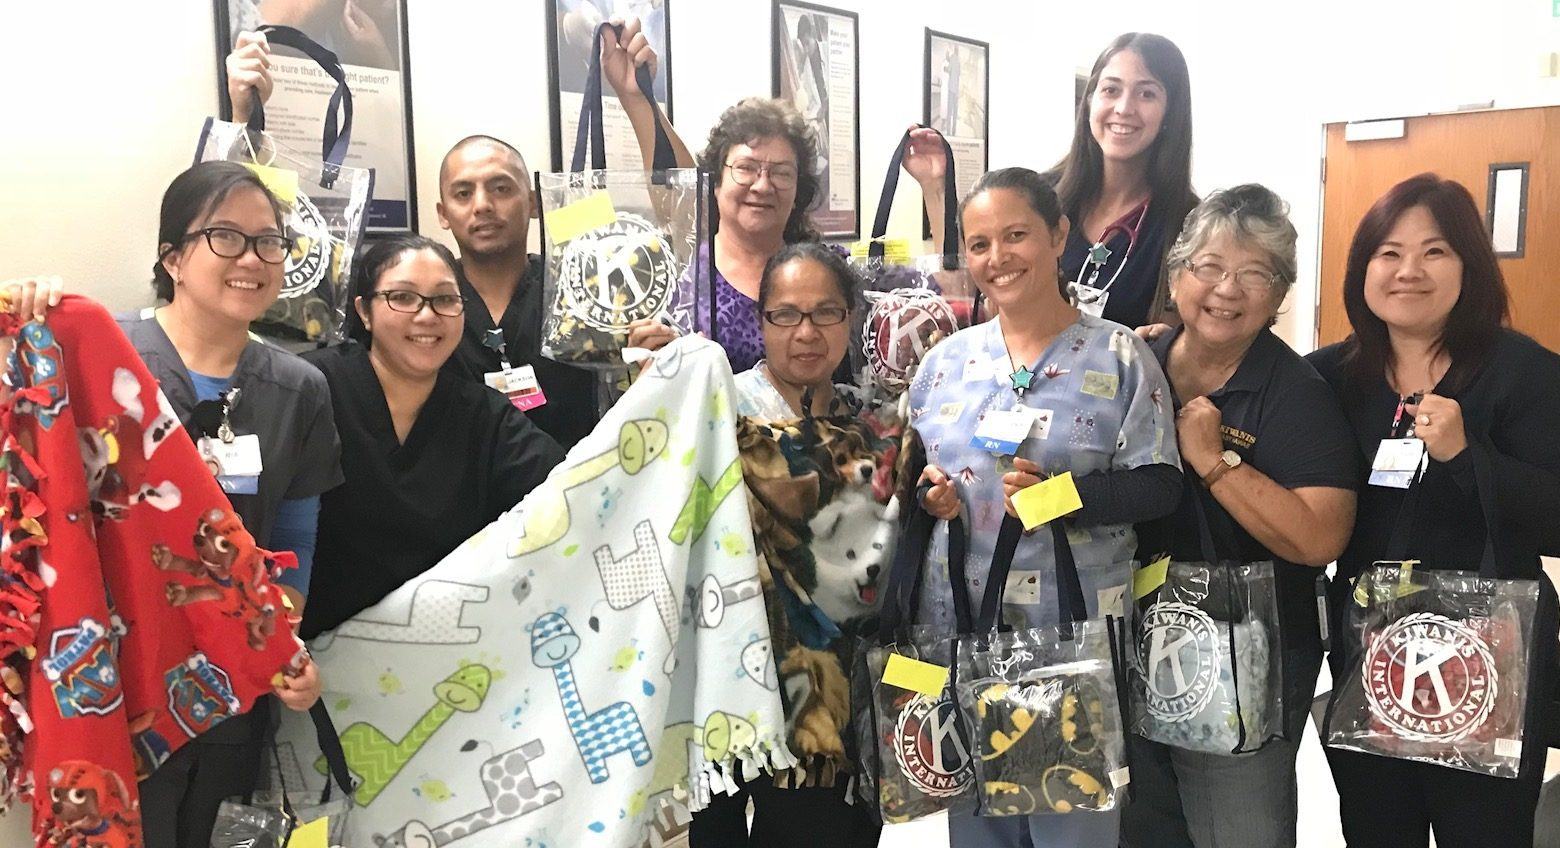 Kiwanis blanket donation with staff